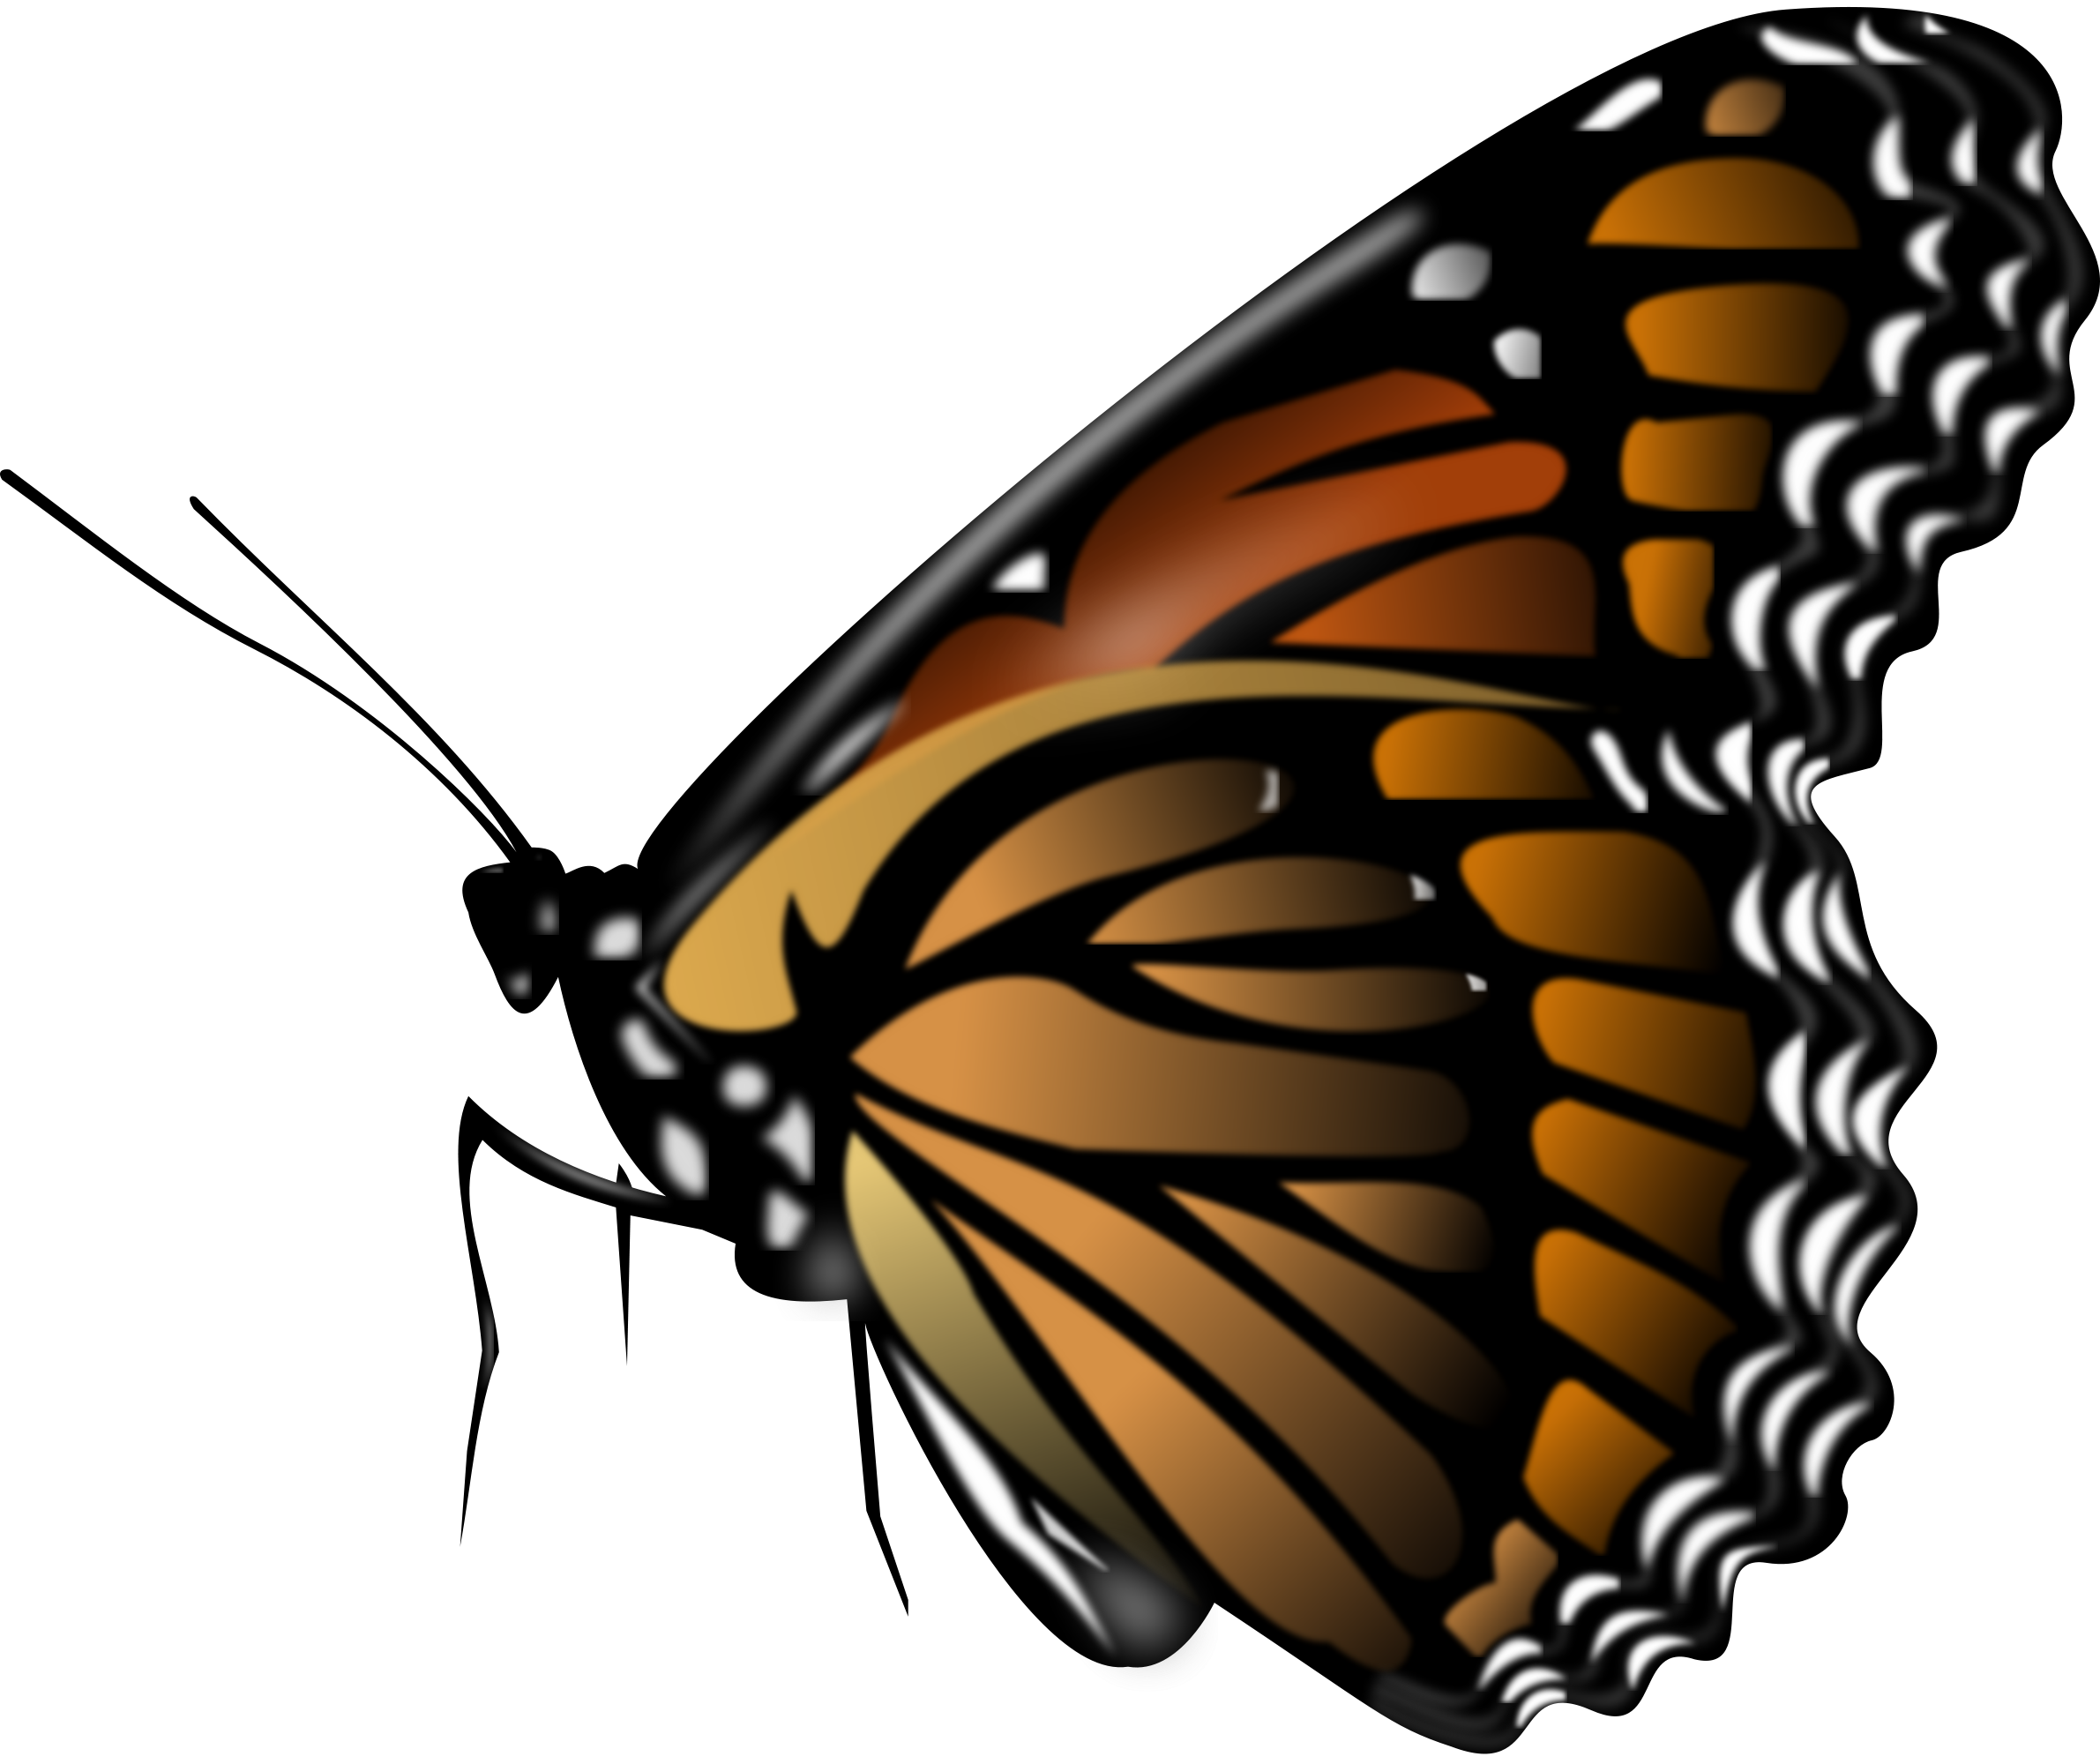 Butterfly Png Image Butterfly Clip Art Butterfly Images Monarch Butterfly